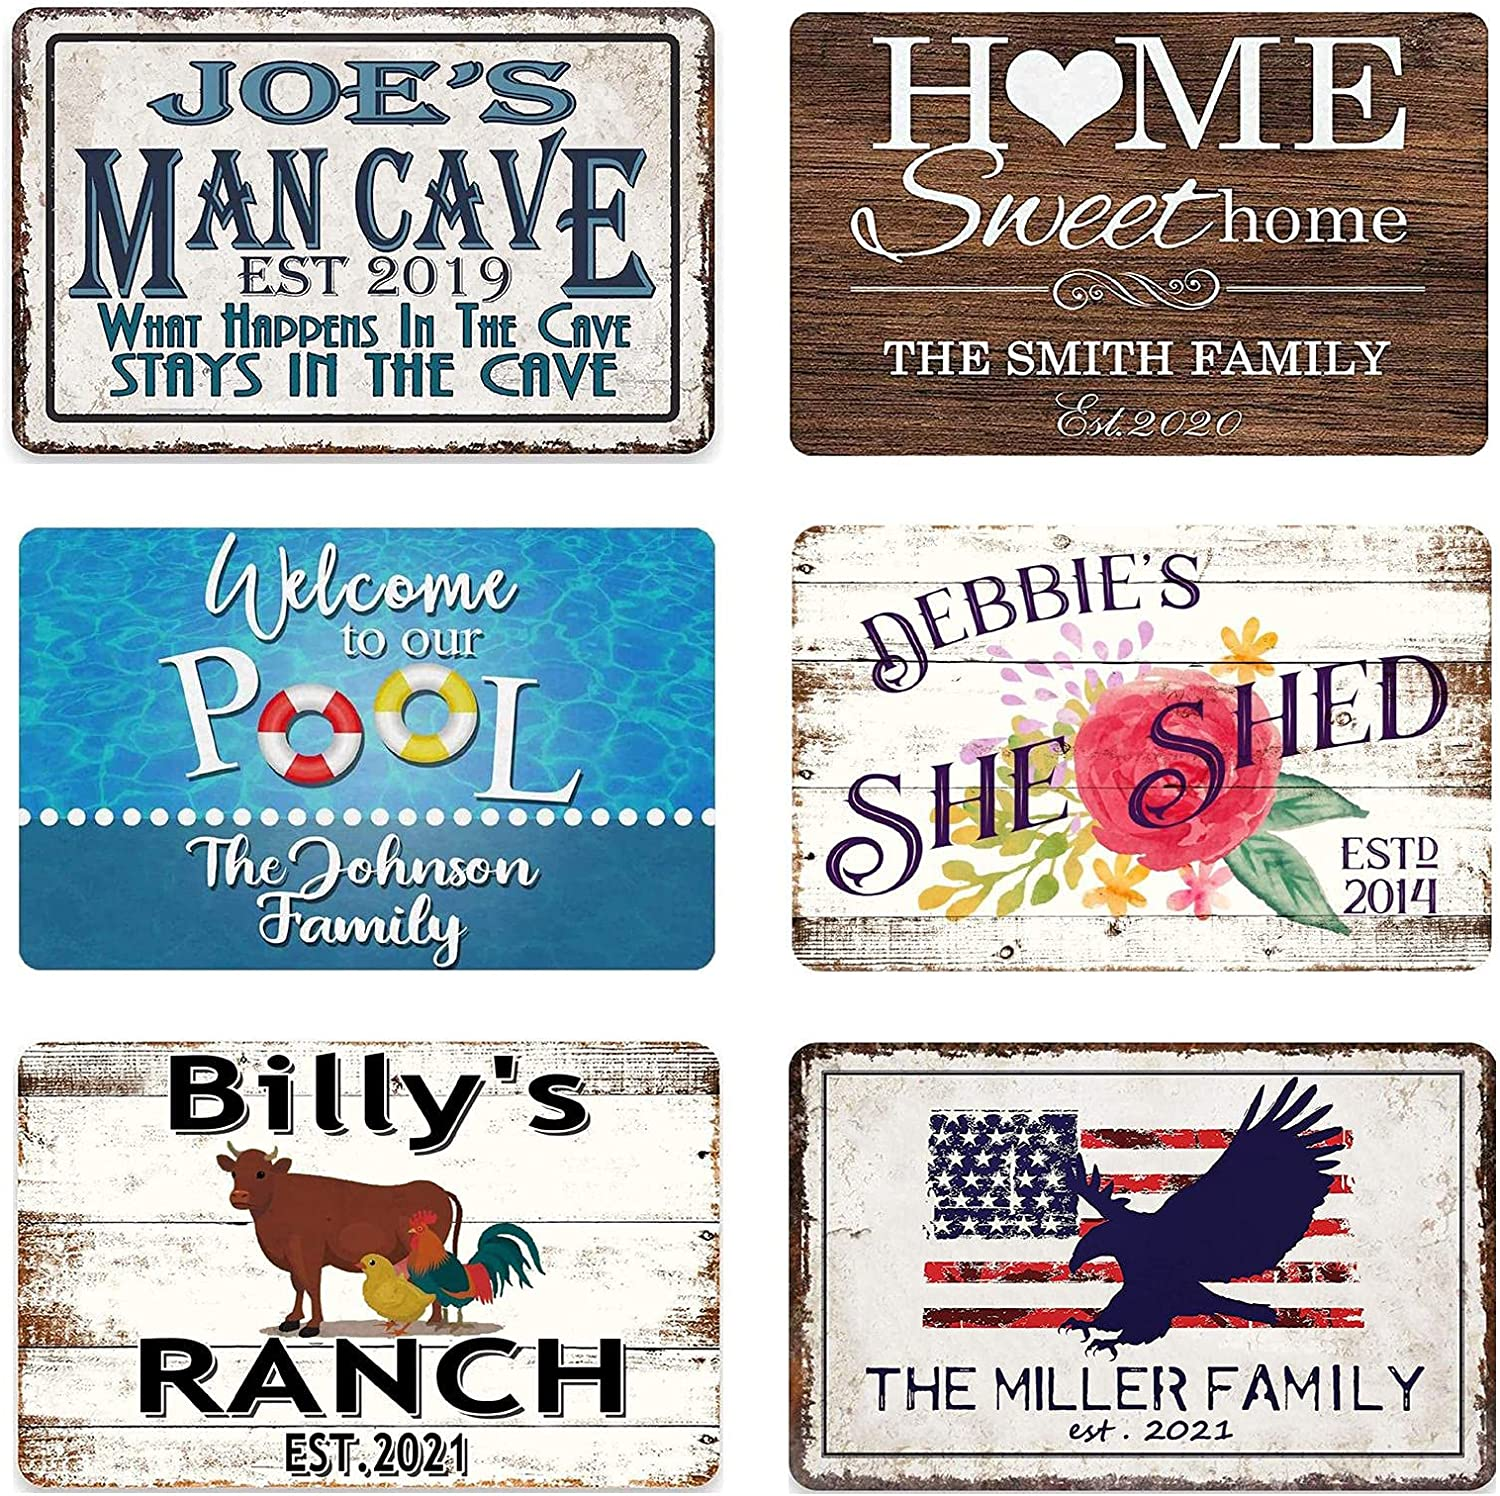 Volluroy Personalized Man Cave Metal Signs, Sweet Home Signs, Pool Signs, She Shed Signs,Ranch Signs, American Flag Eagle Sign, Custom Home Room Bedroom Wall Decor Plaque 8